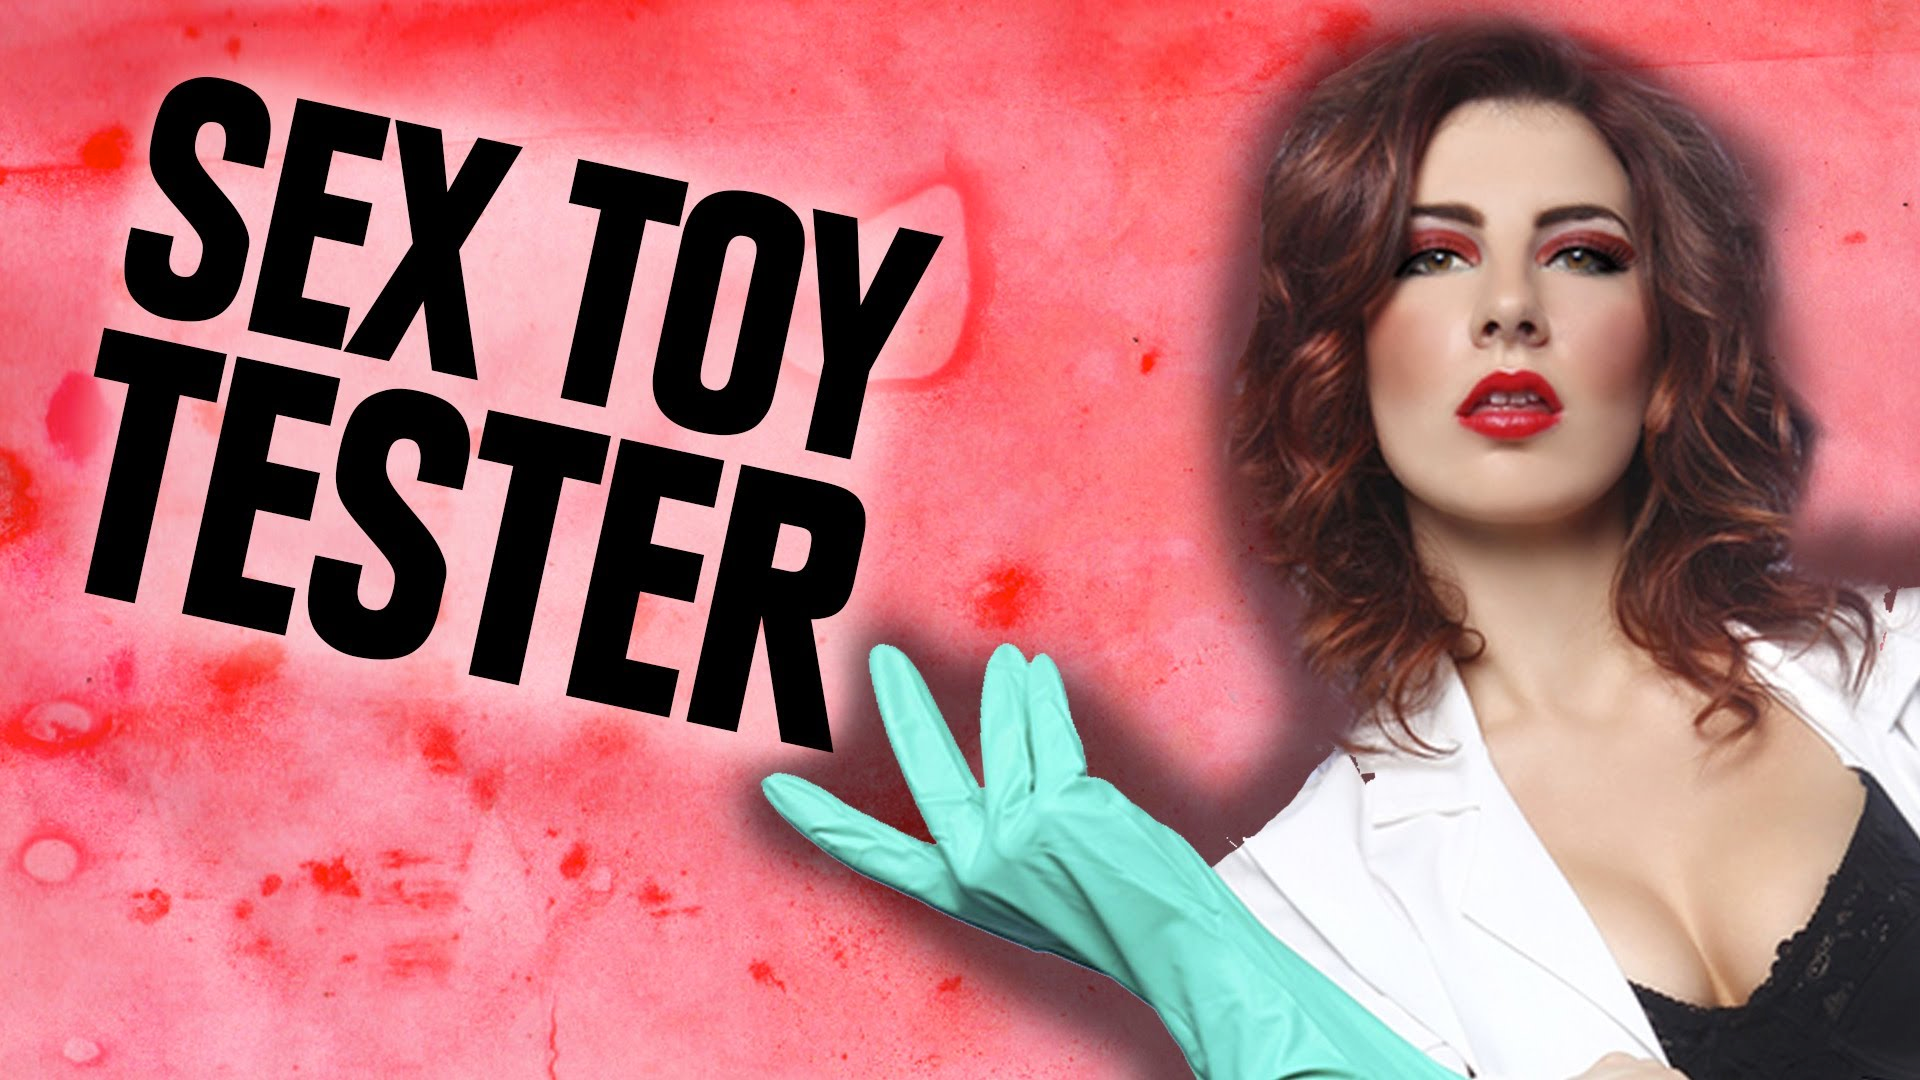 sex toy tester